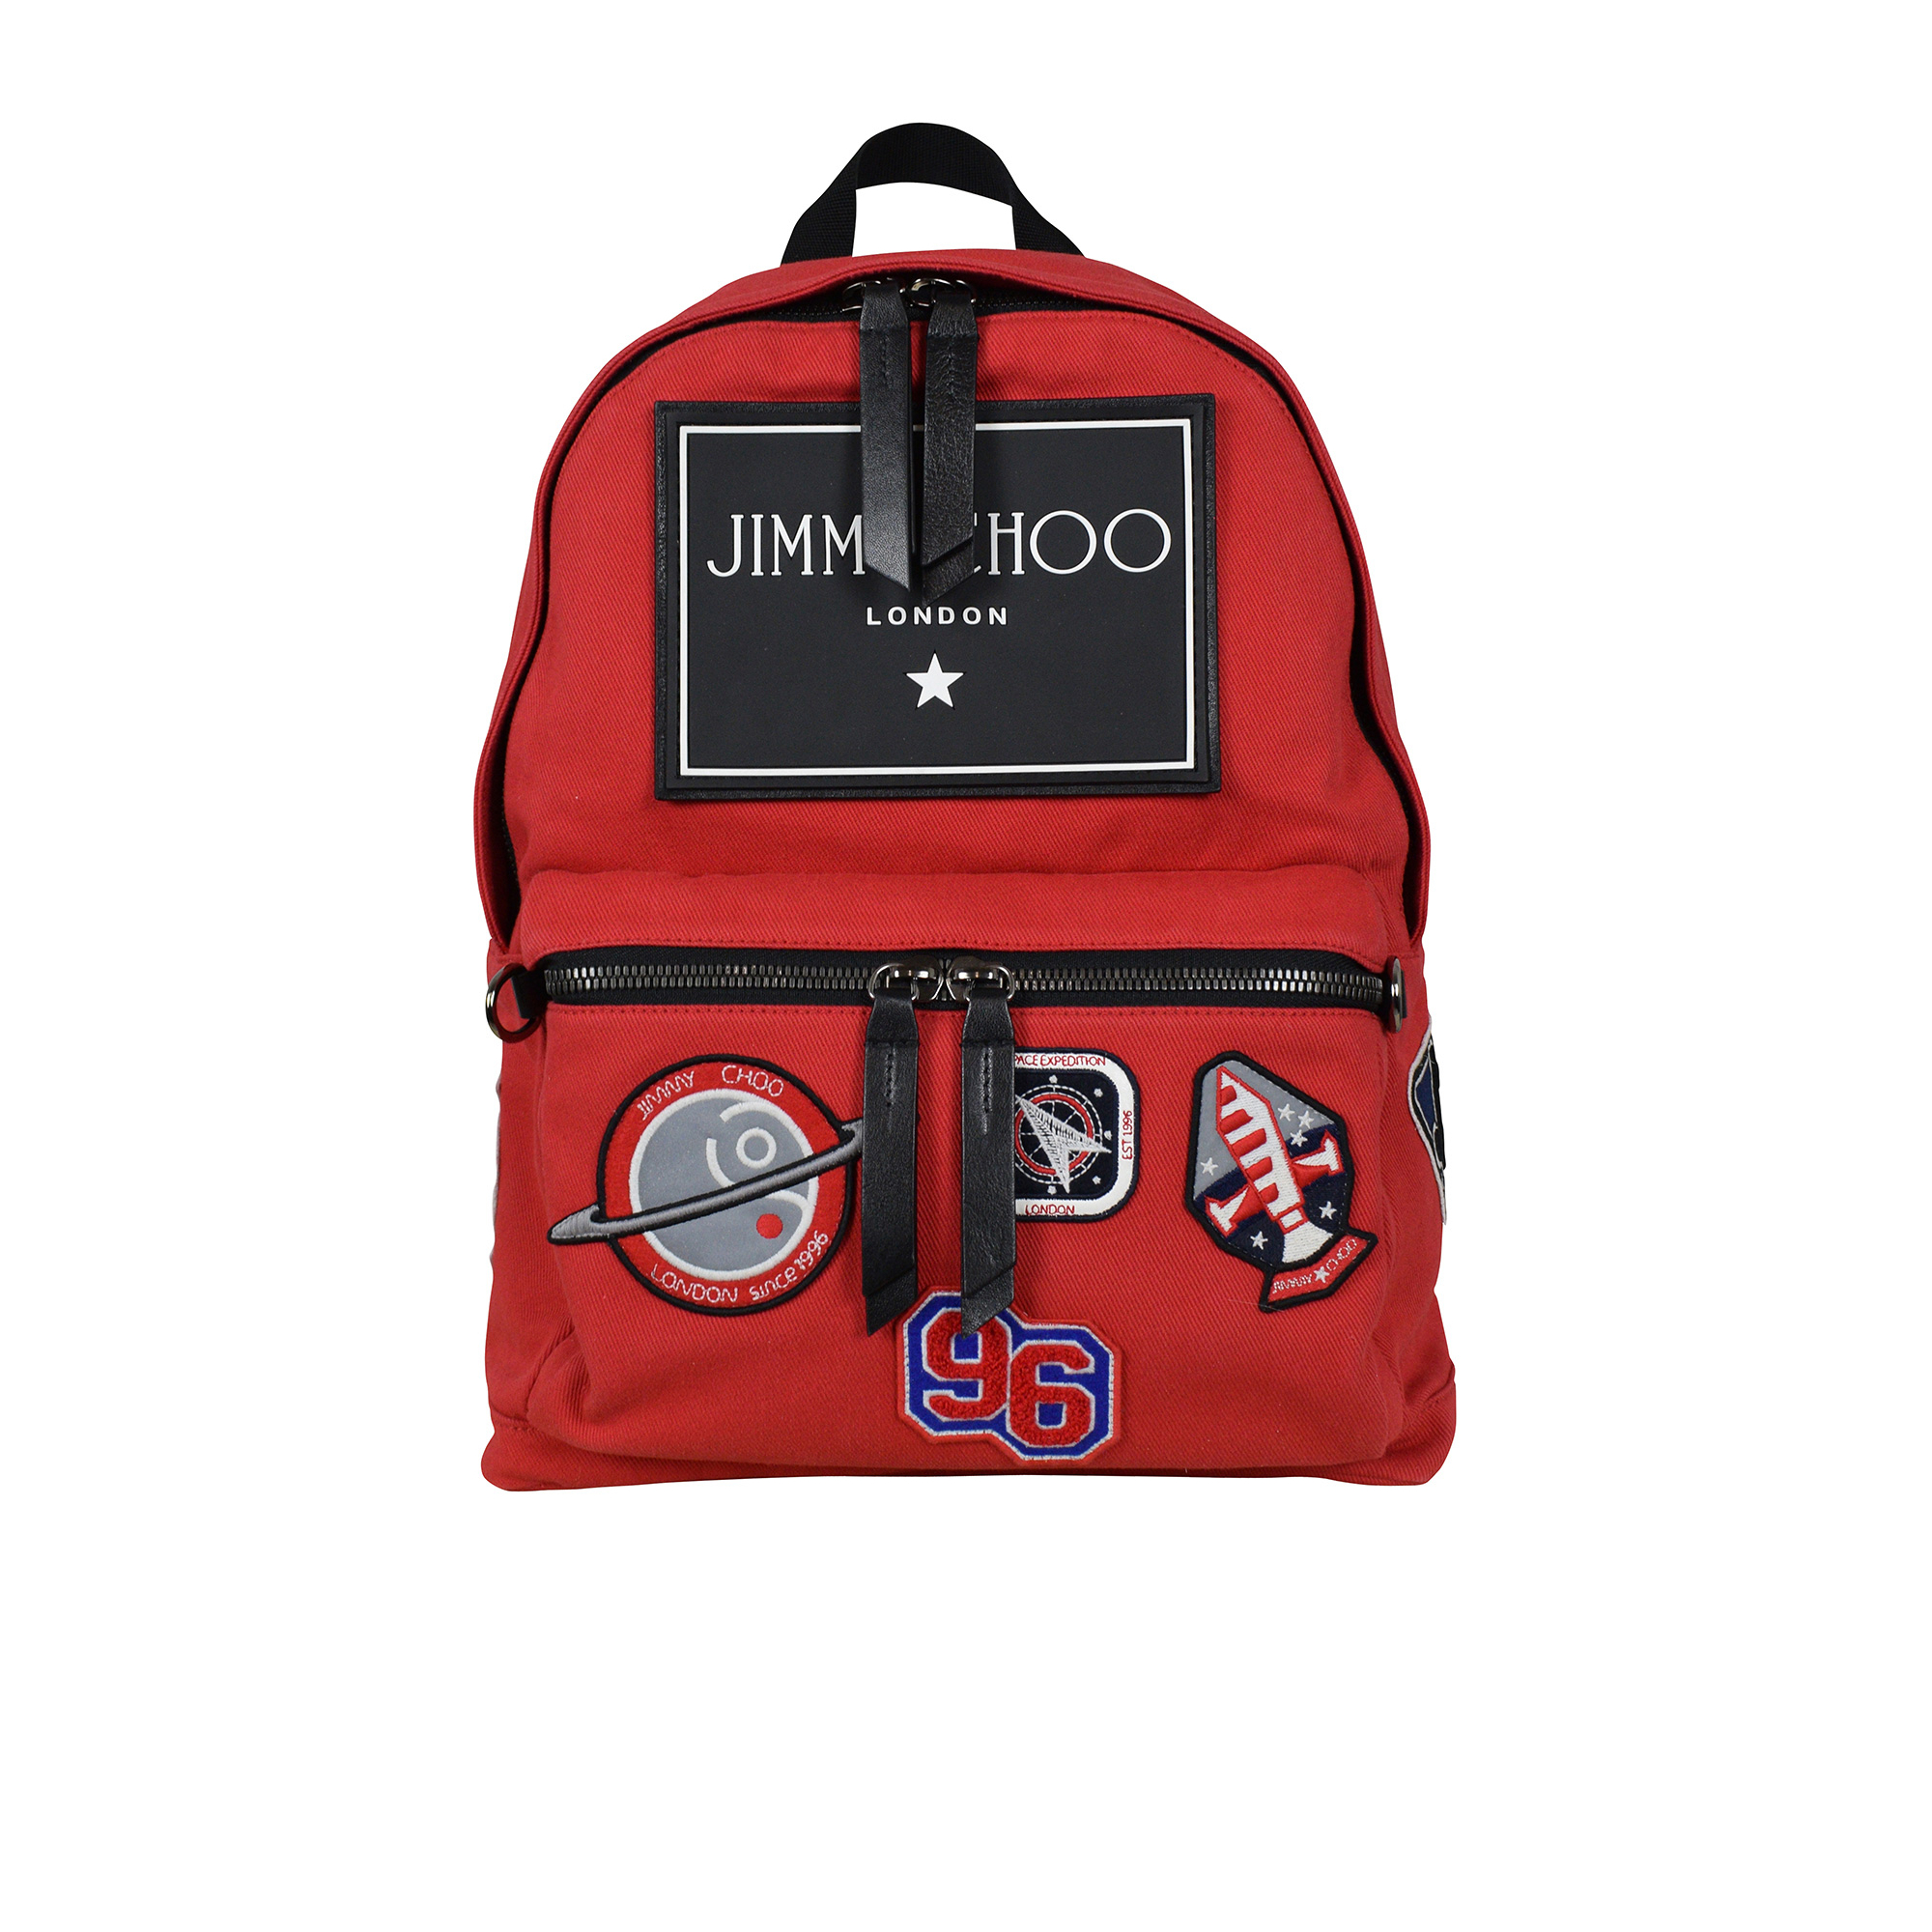 Jimmy Choo Backpack in red canvas with patches and logo